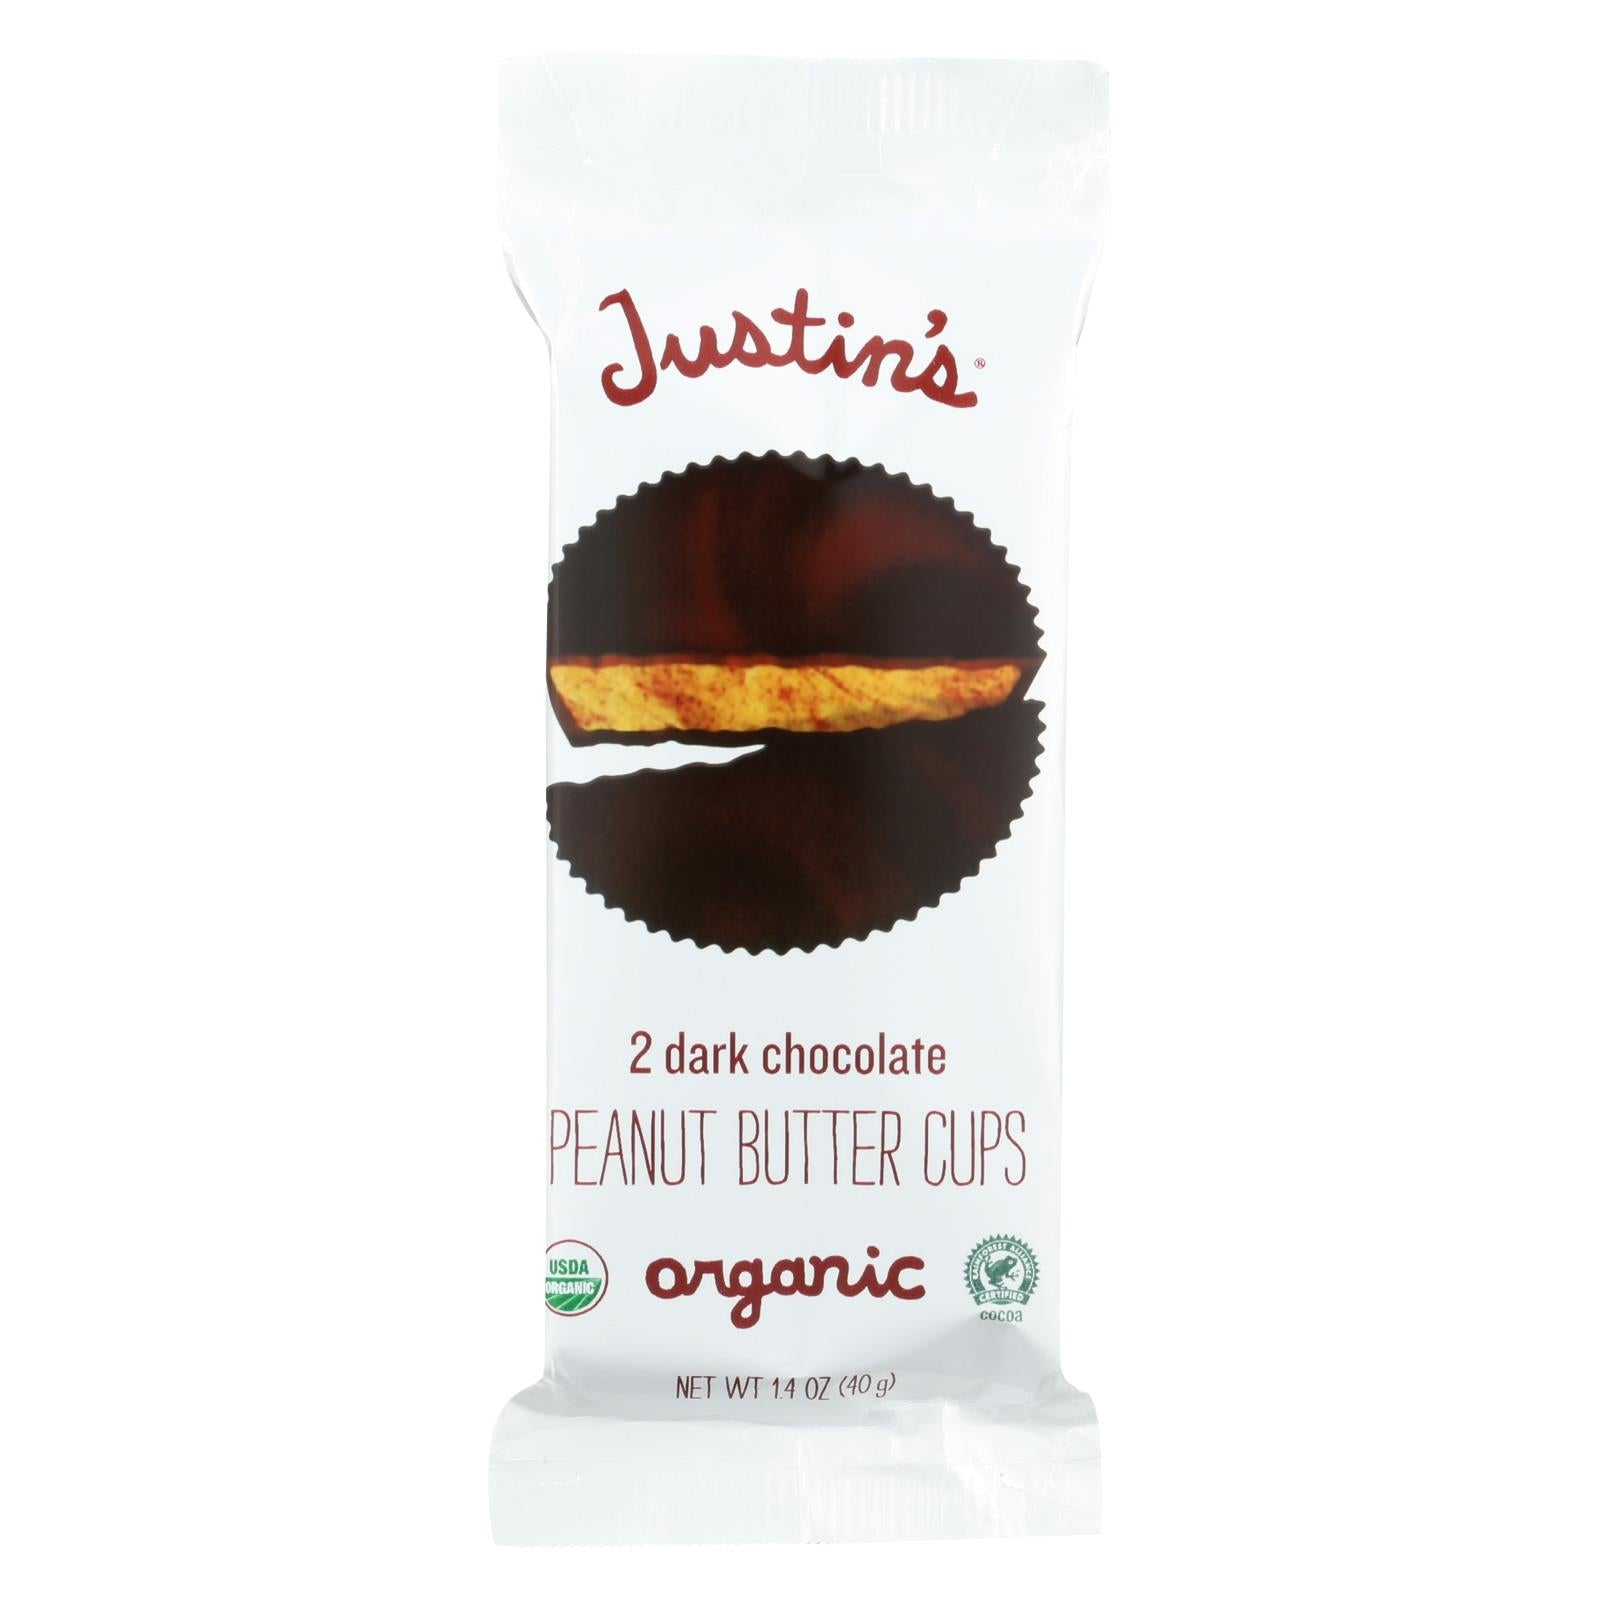 Justin's Nut Butter Organic Peanut Butter Cups Dark Chocolate 1.4 Oz Case Of 12 HG0647743